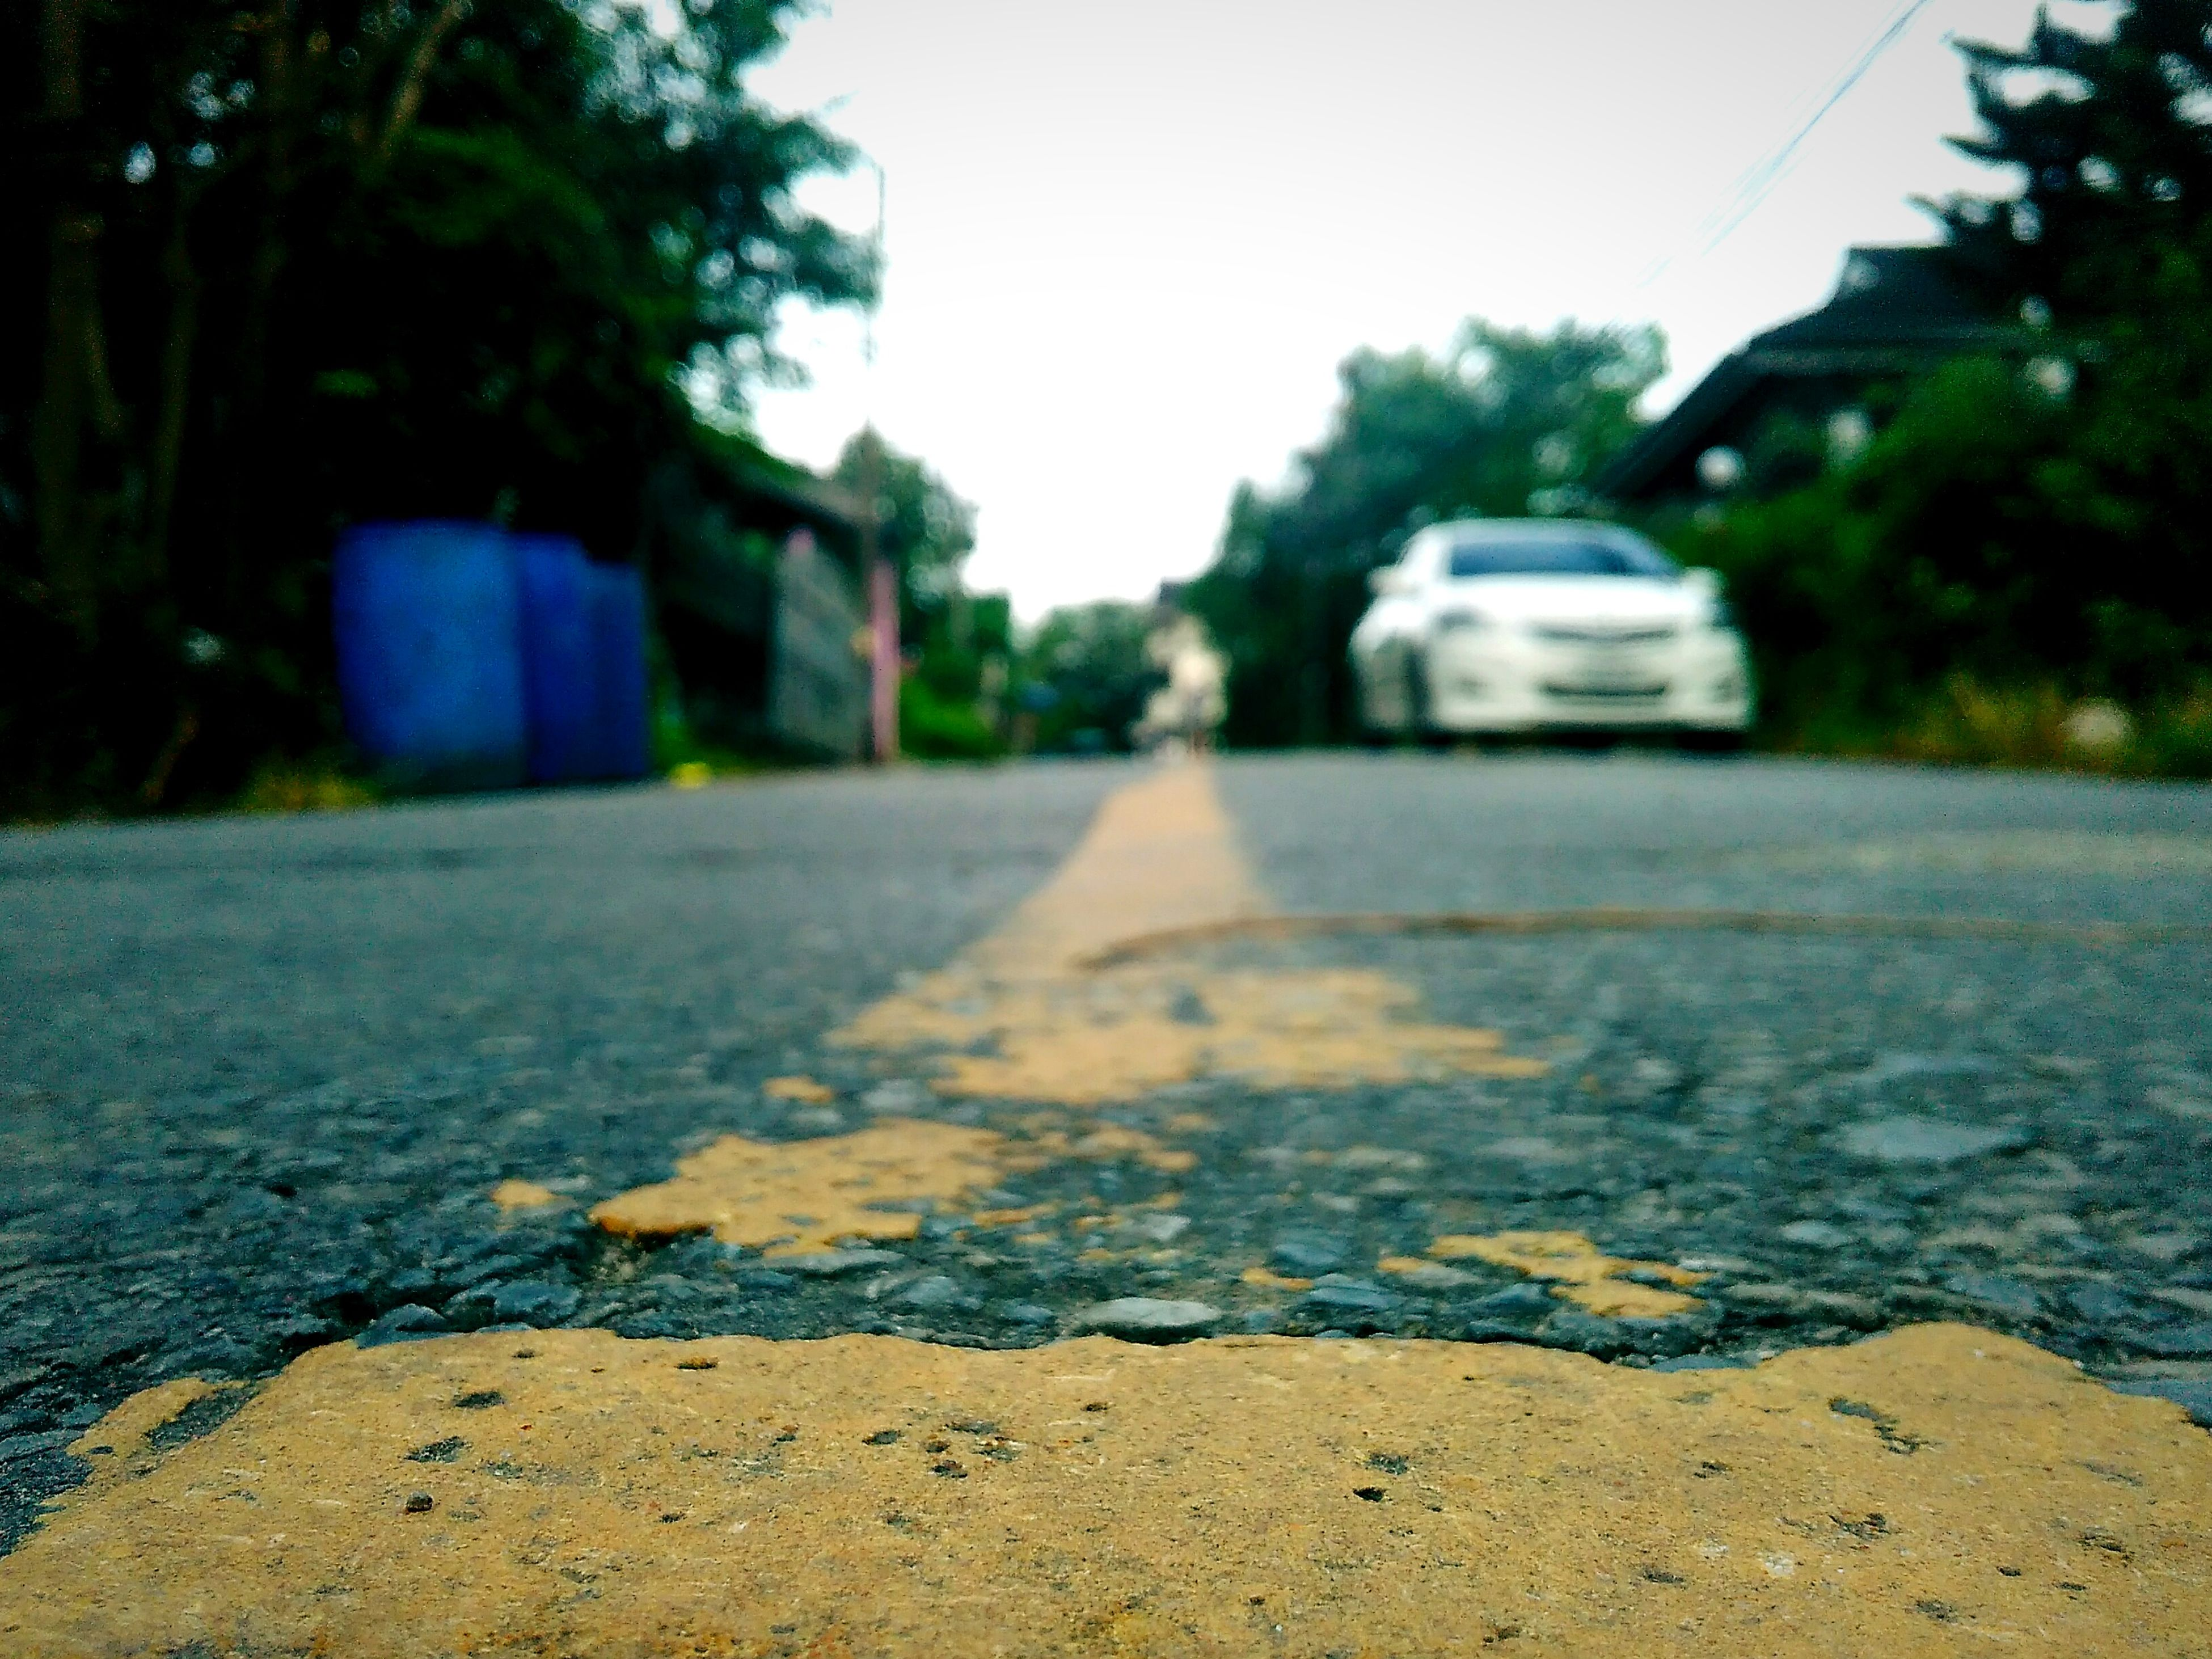 road, street, the way forward, transportation, tree, outdoors, surface level, no people, asphalt, day, close-up, nature